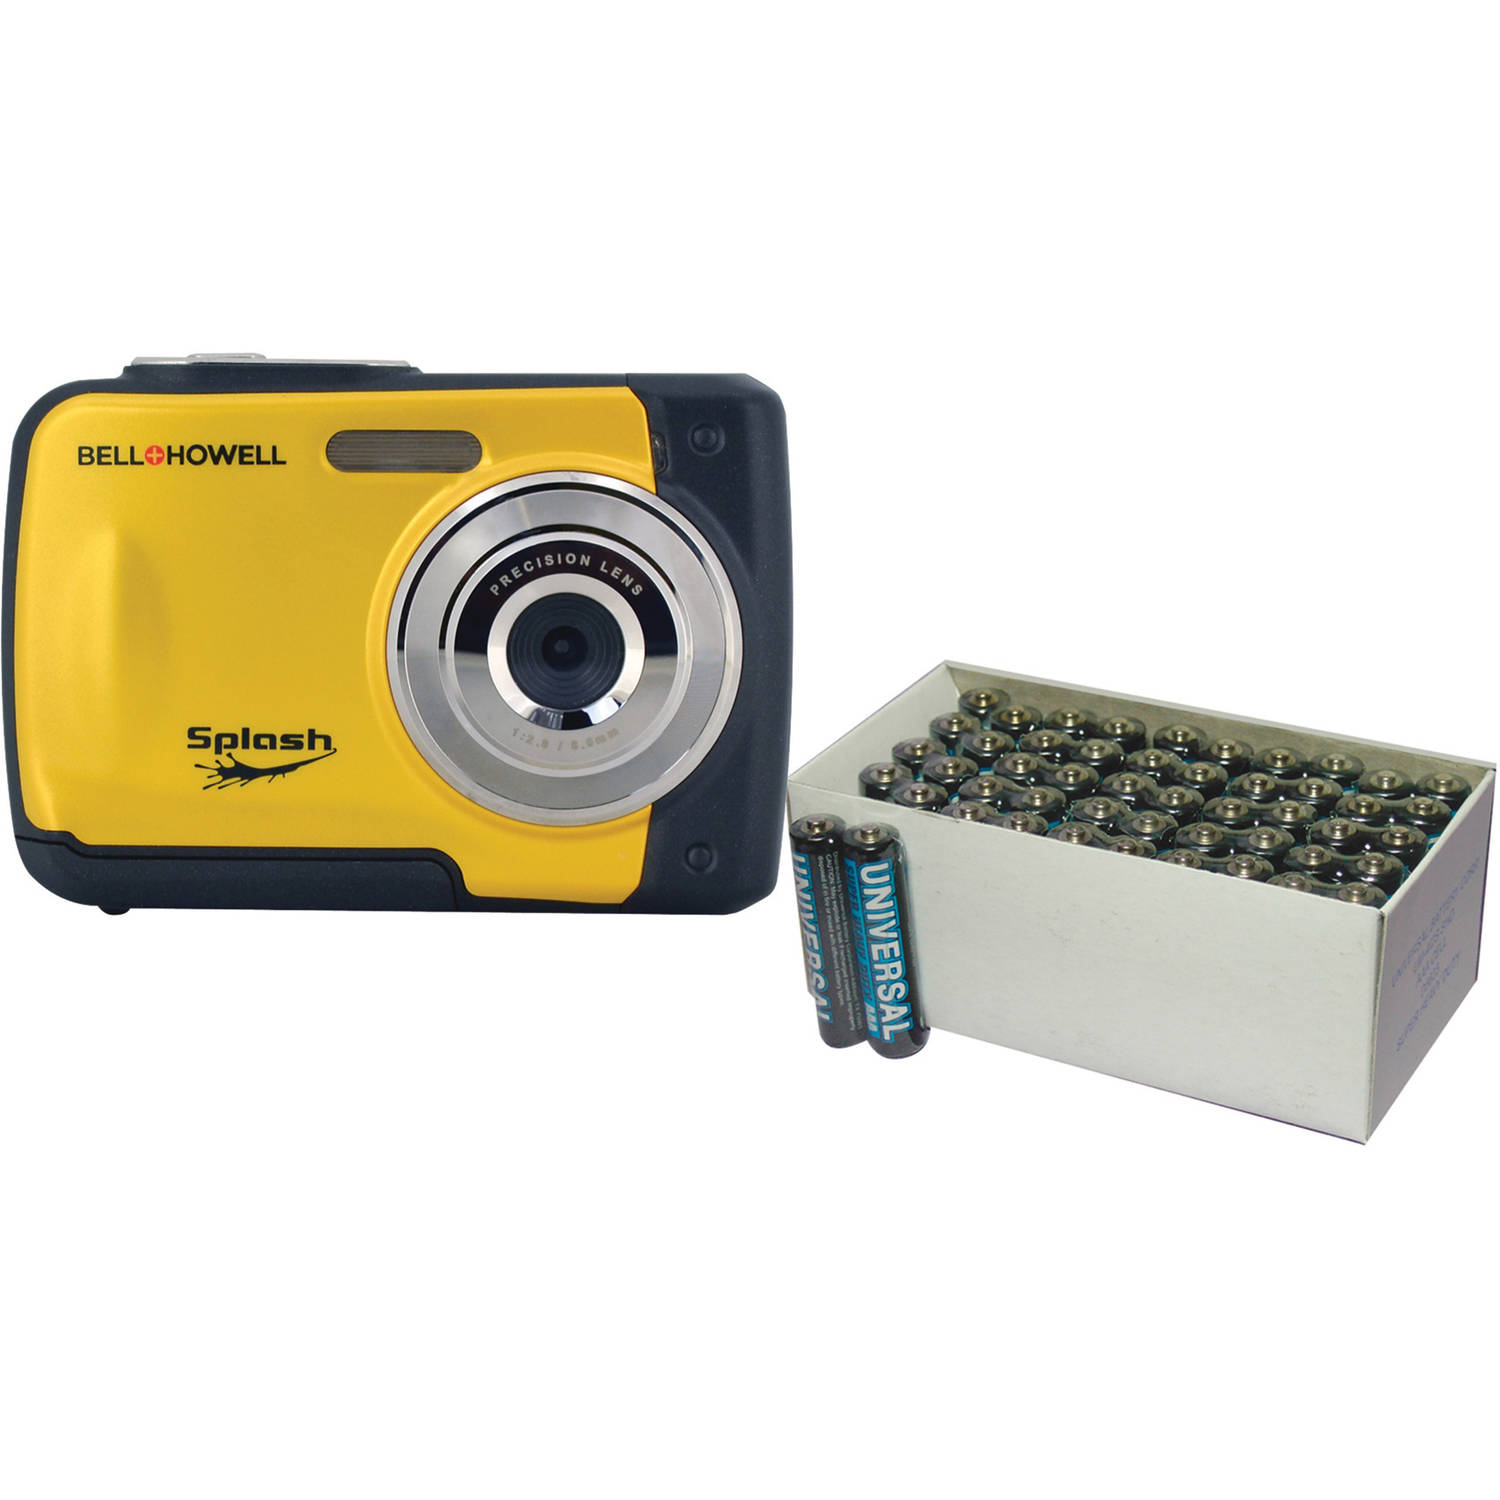 Bell+Howell Yellow WP10 Waterproof Digital Camera with 12 Megapixels and UPG 50-Pack AAA Batteries